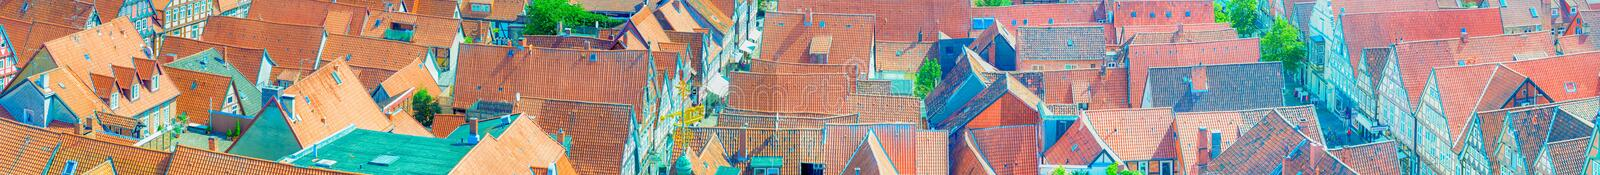 Aerial view of medieval city rooftops.  stock photo